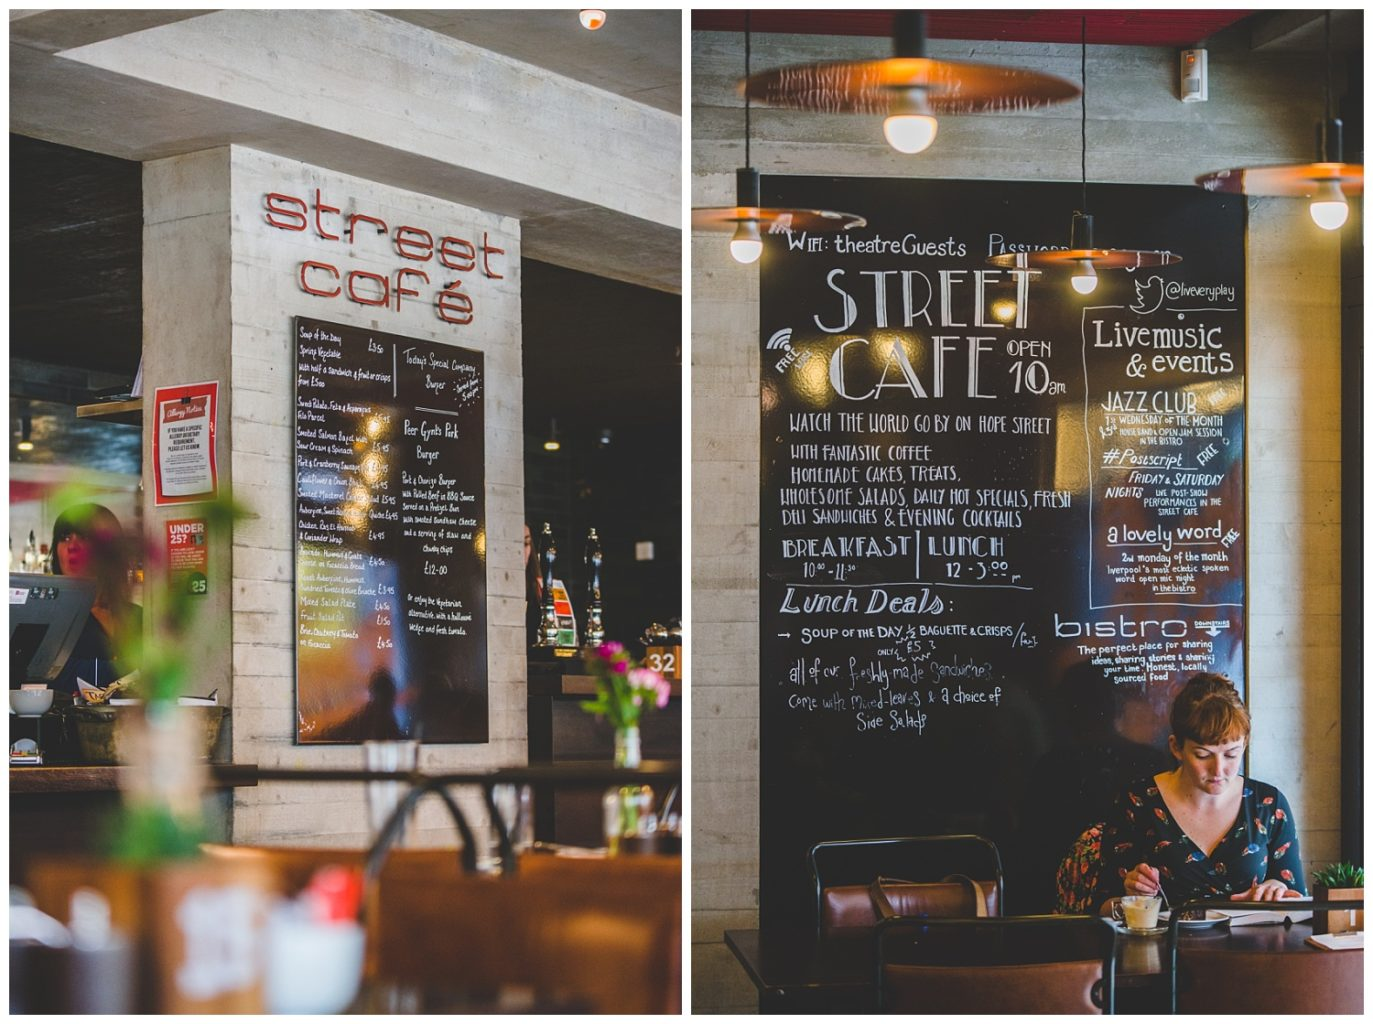 Liverpool Everyman street cafe - Liverpool commercial photography